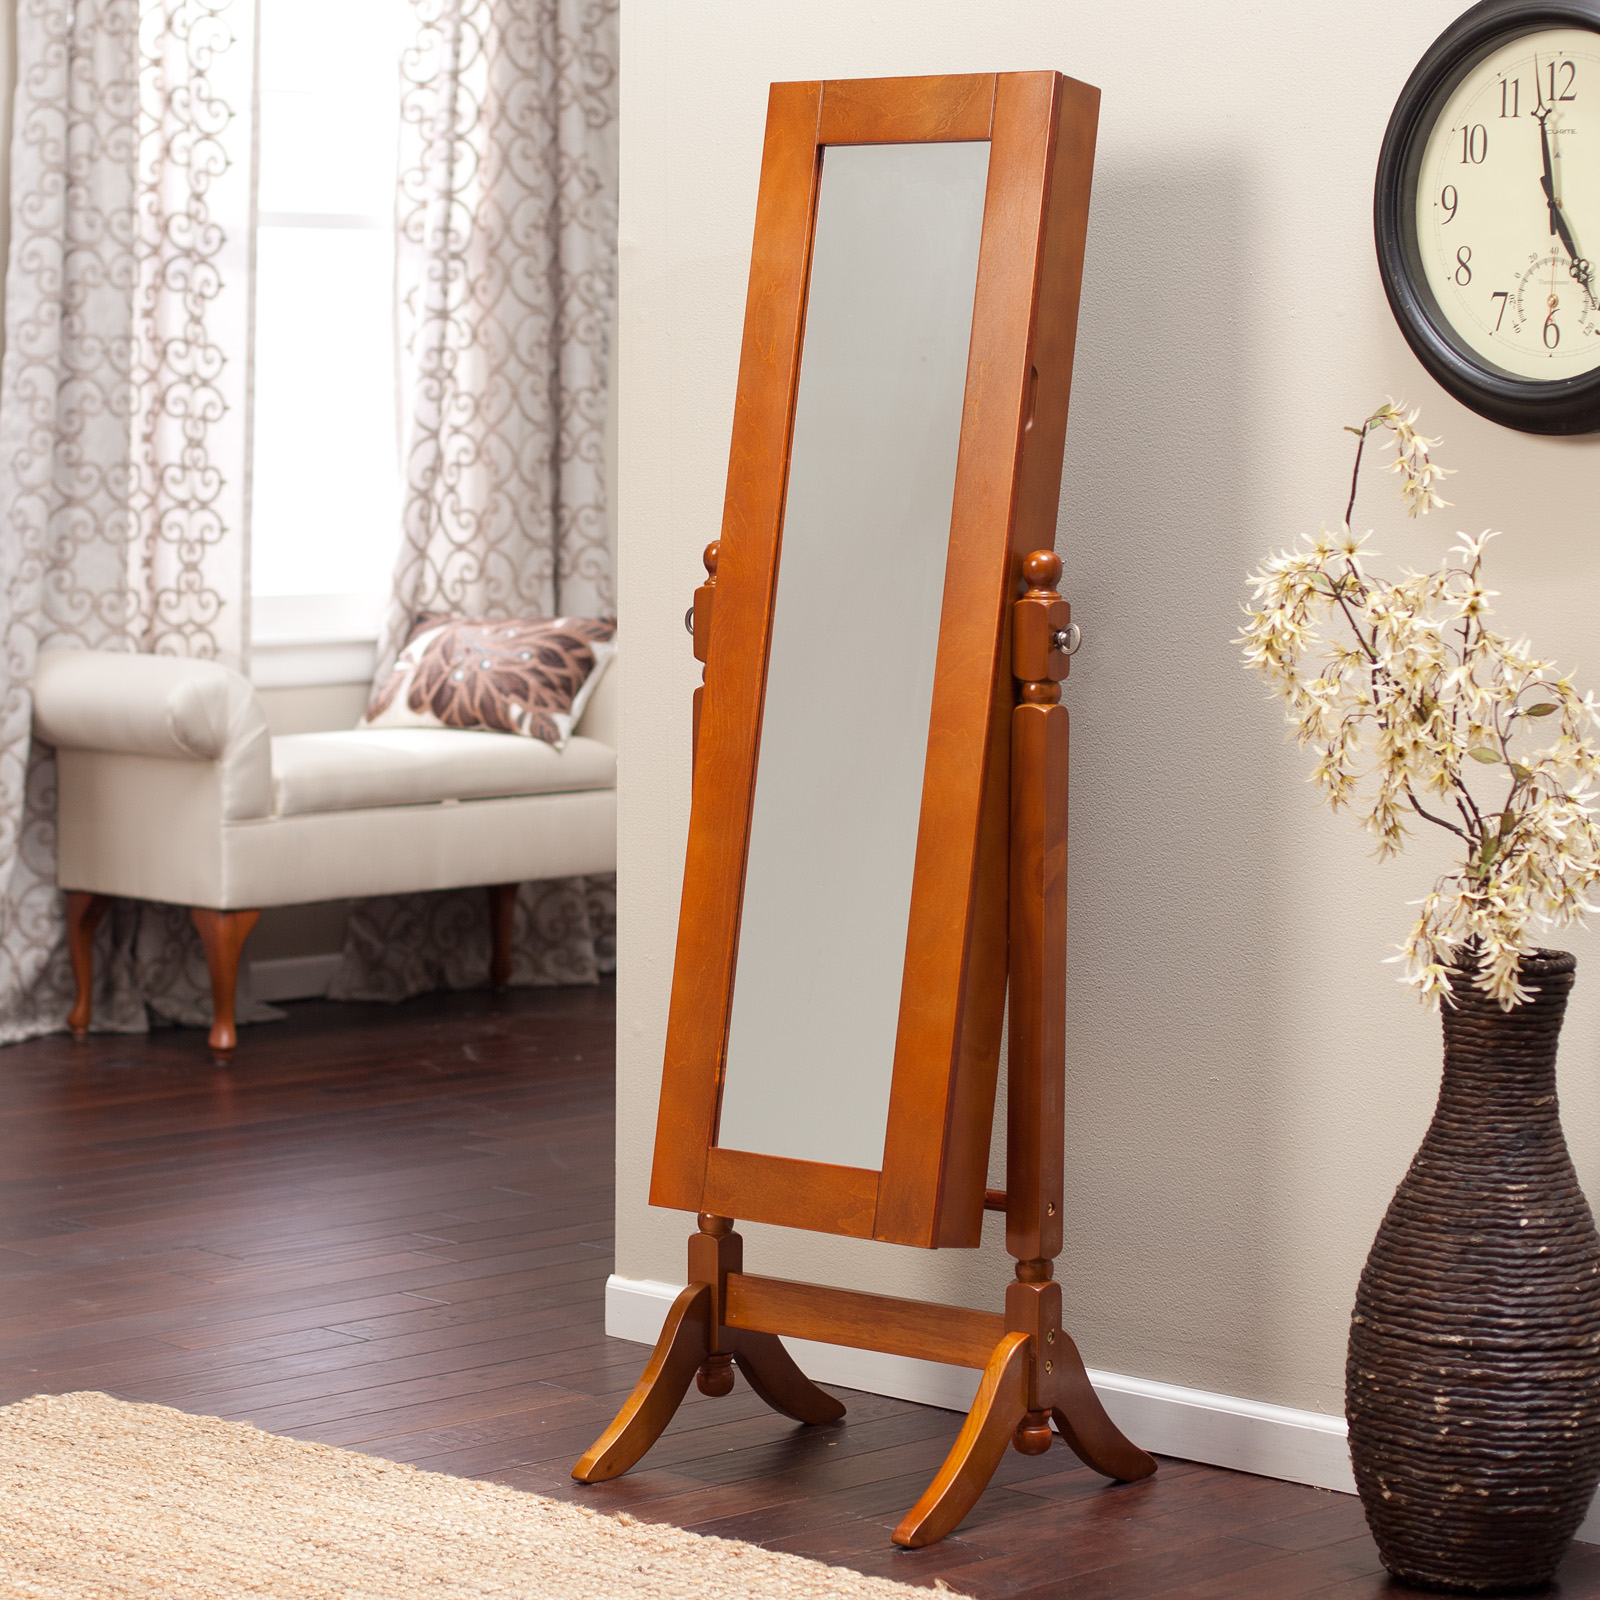 Heritage Jewelry Armoire Cheval Mirror Oak Hayneedle